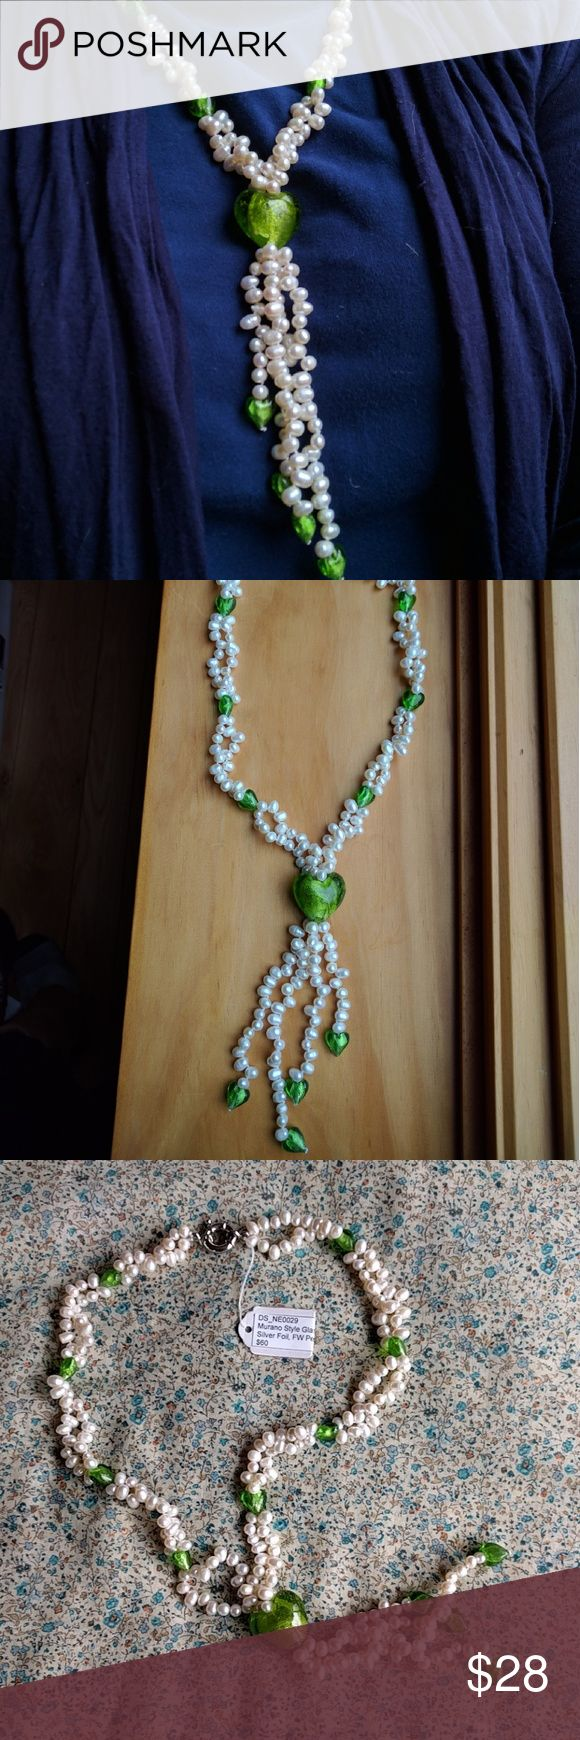 "NWT Murano style glass heart with pearl necklace Genuine freshwater pearls and green Murano style glass hearts make up this lovely dangling necklace.  Handmade and unique, a little boho and still classy with real pearls.  Measures 24"" length, dangling section measures 5.5"" length. Jewelry Necklaces"